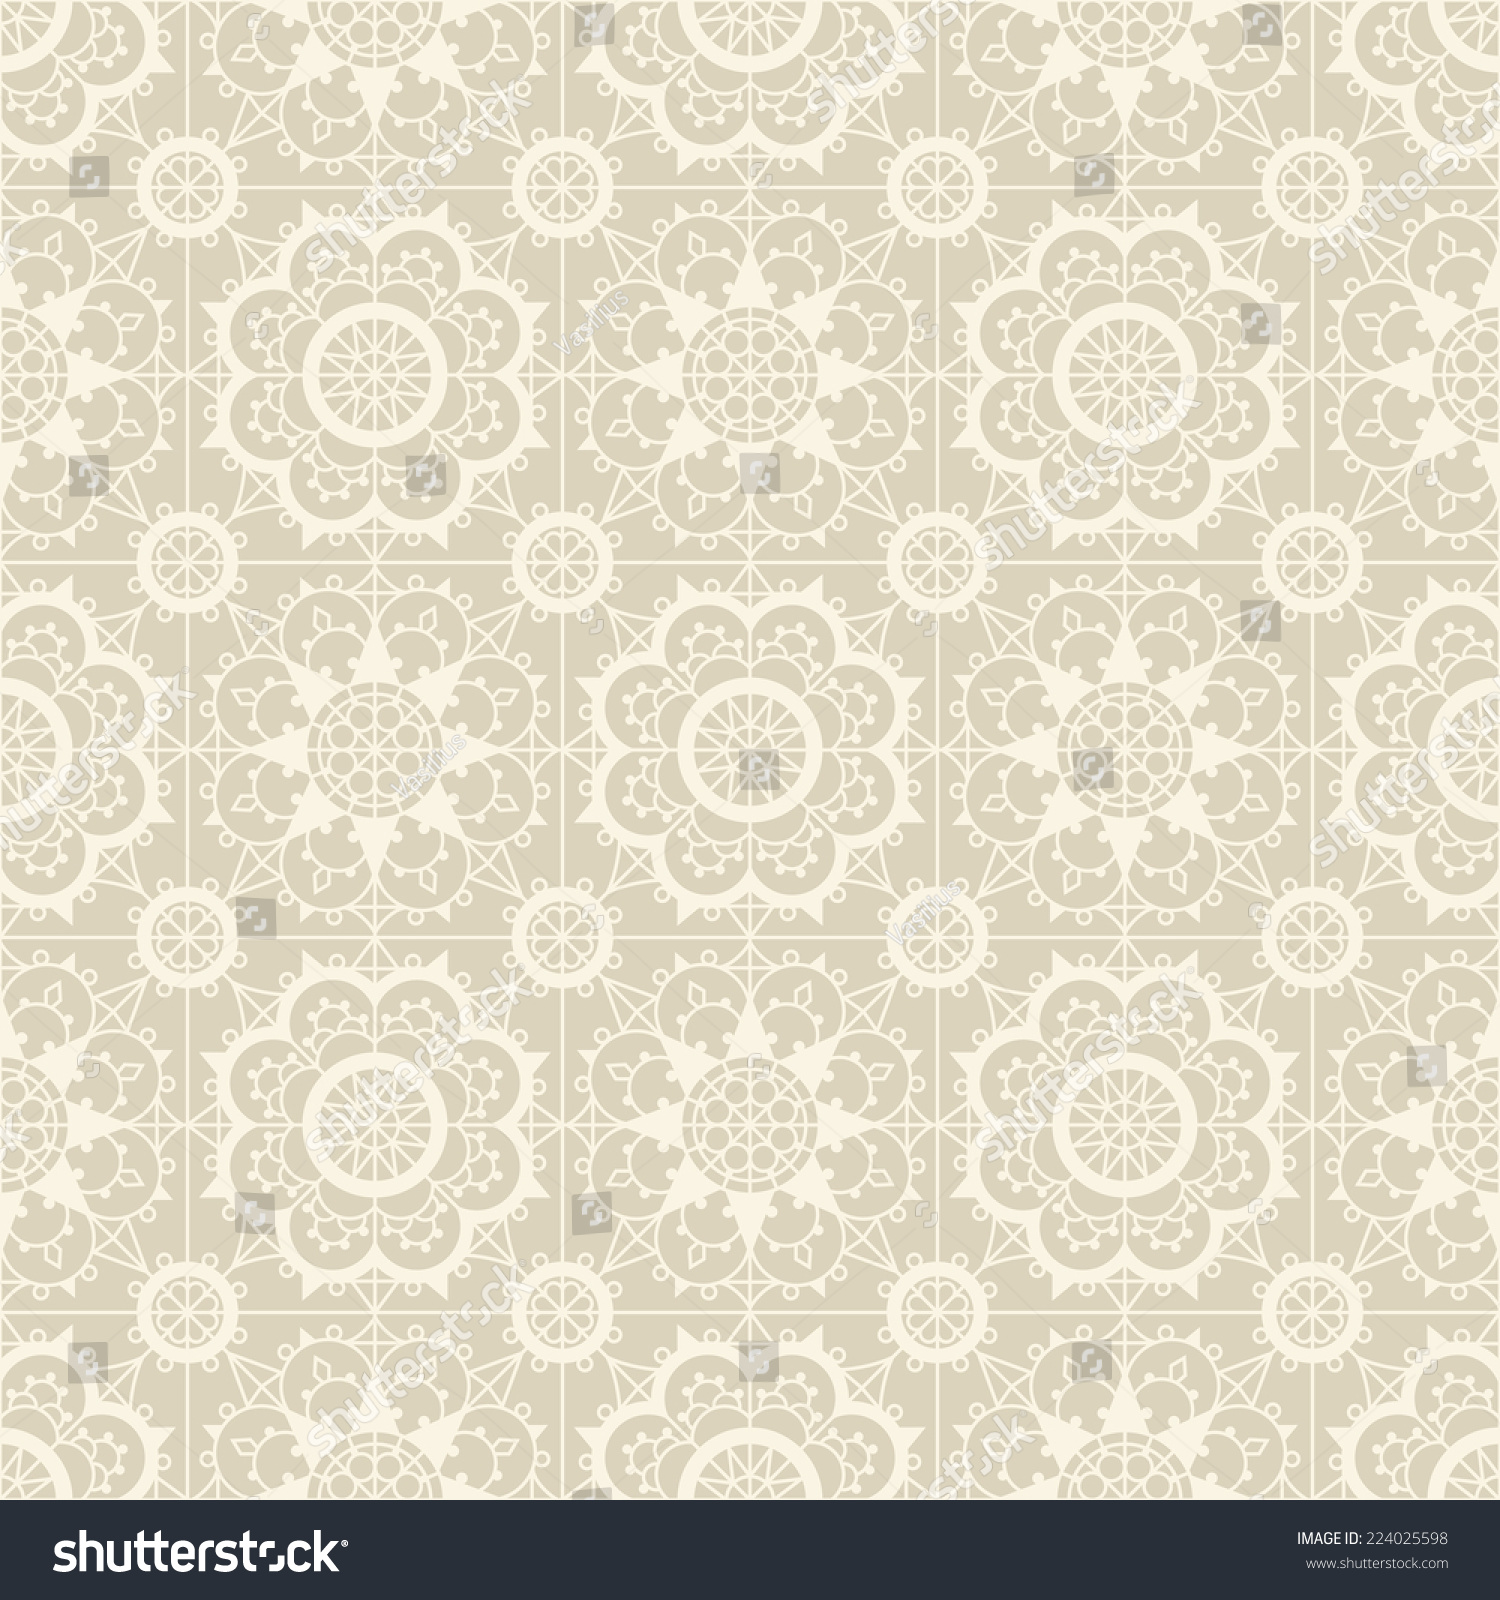 vintage repeating wallpaper - photo #24